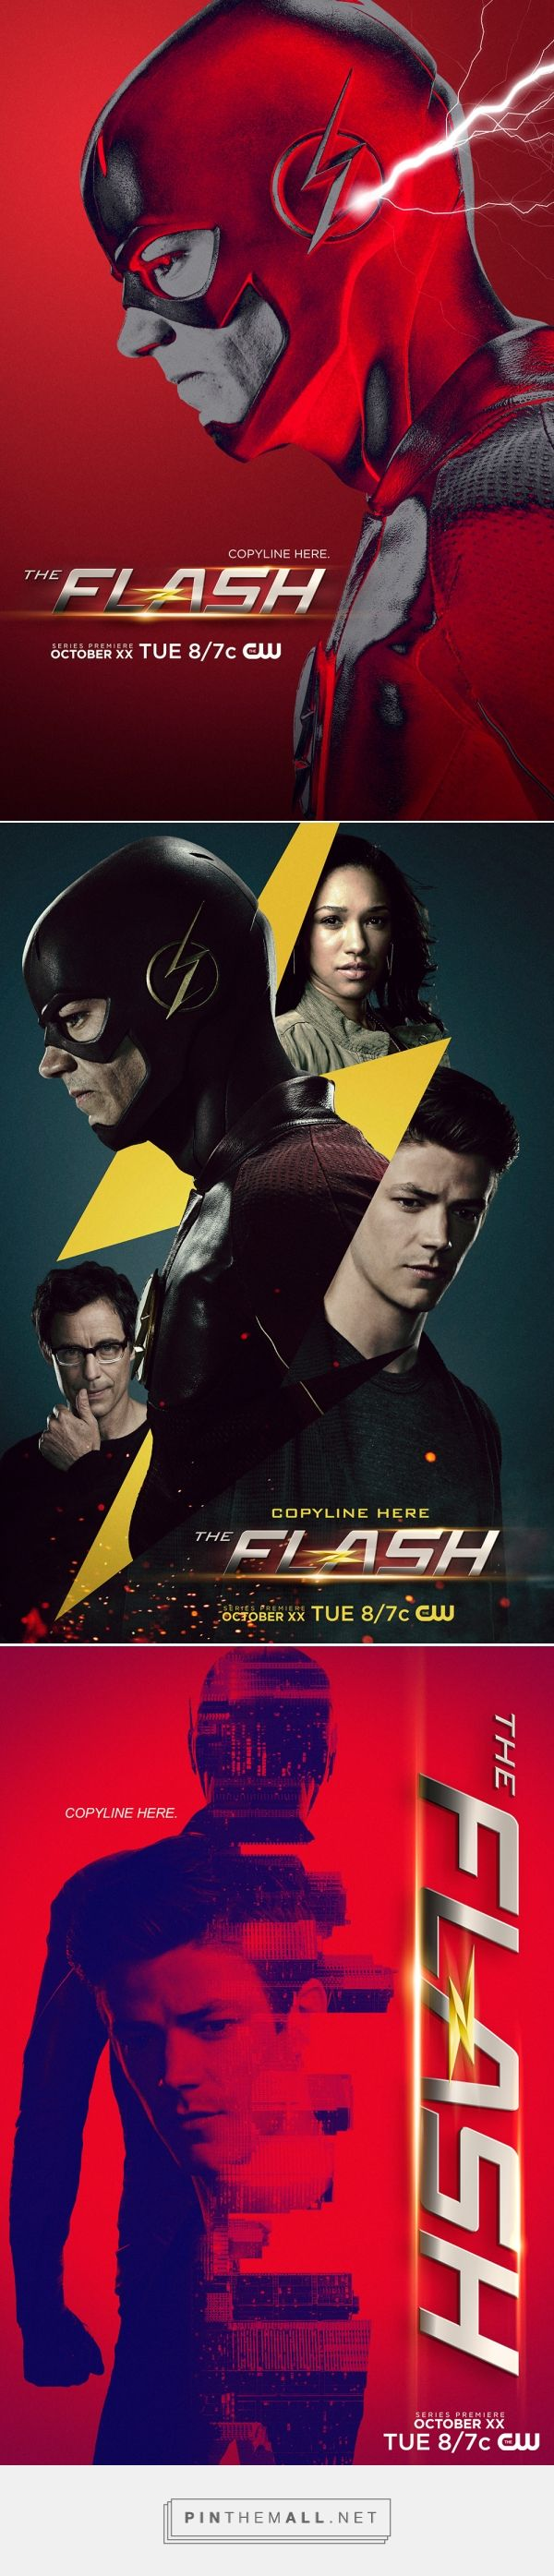 The Flash Season 2 fan posters